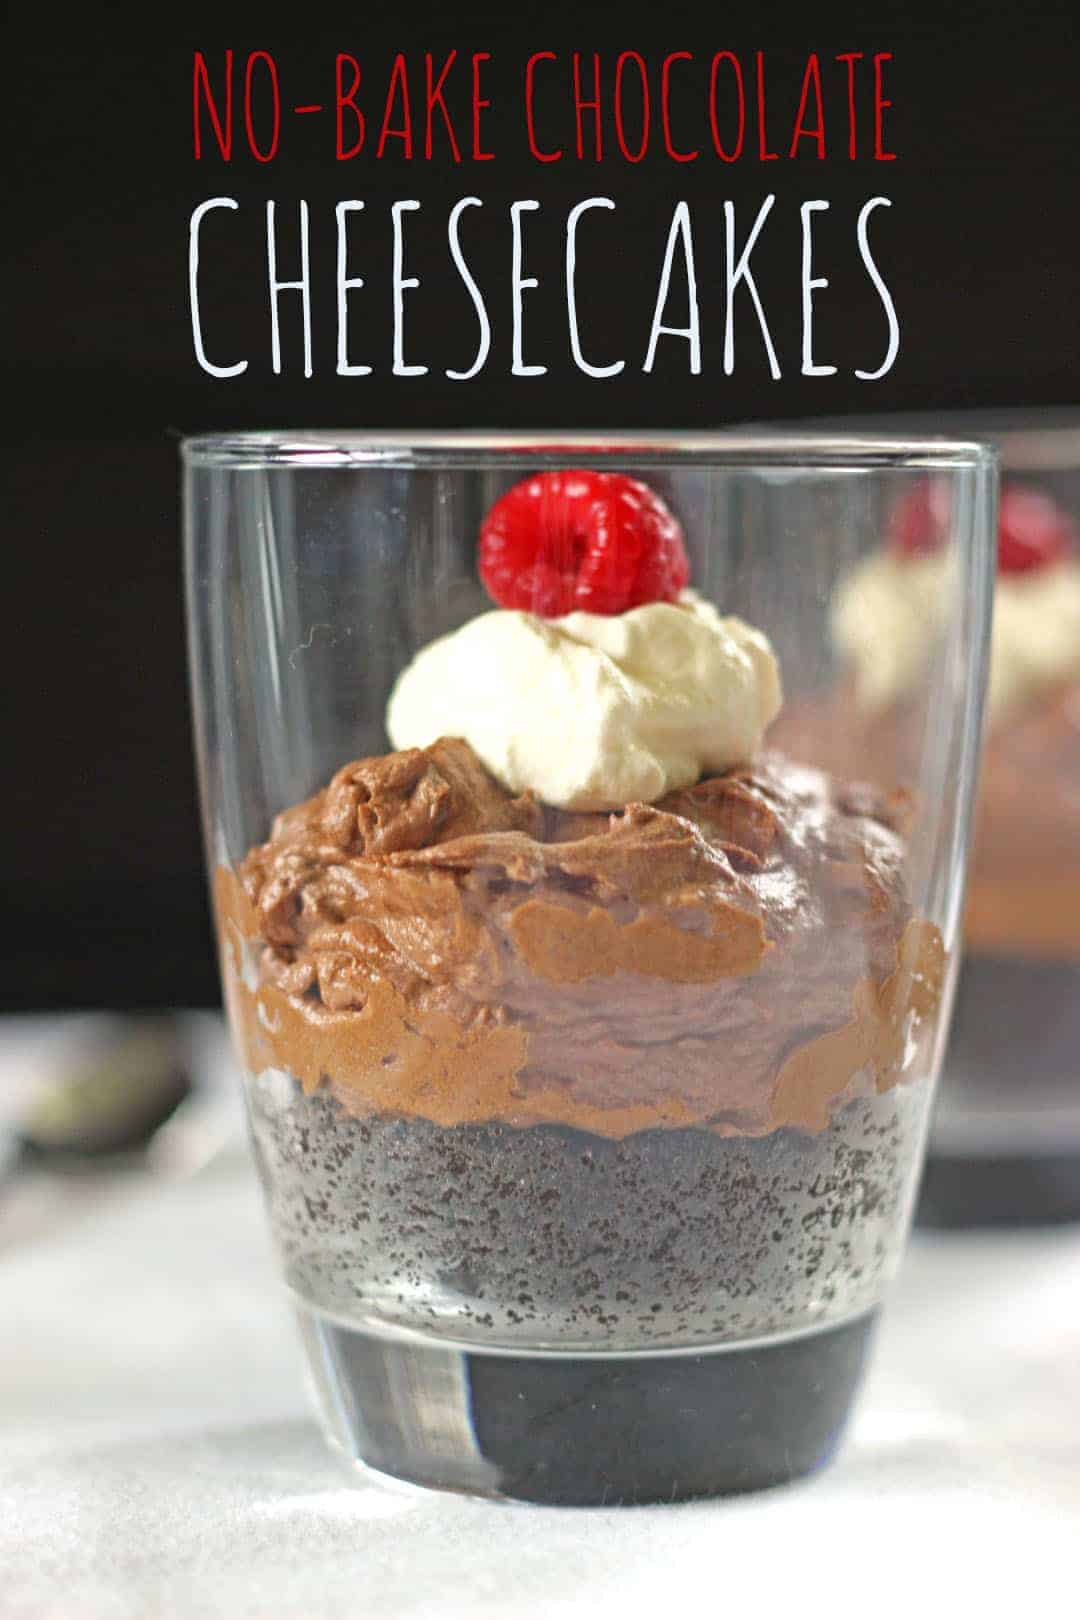 No Bake Chocolate Cheesecakes - The Kiwi Country Girl